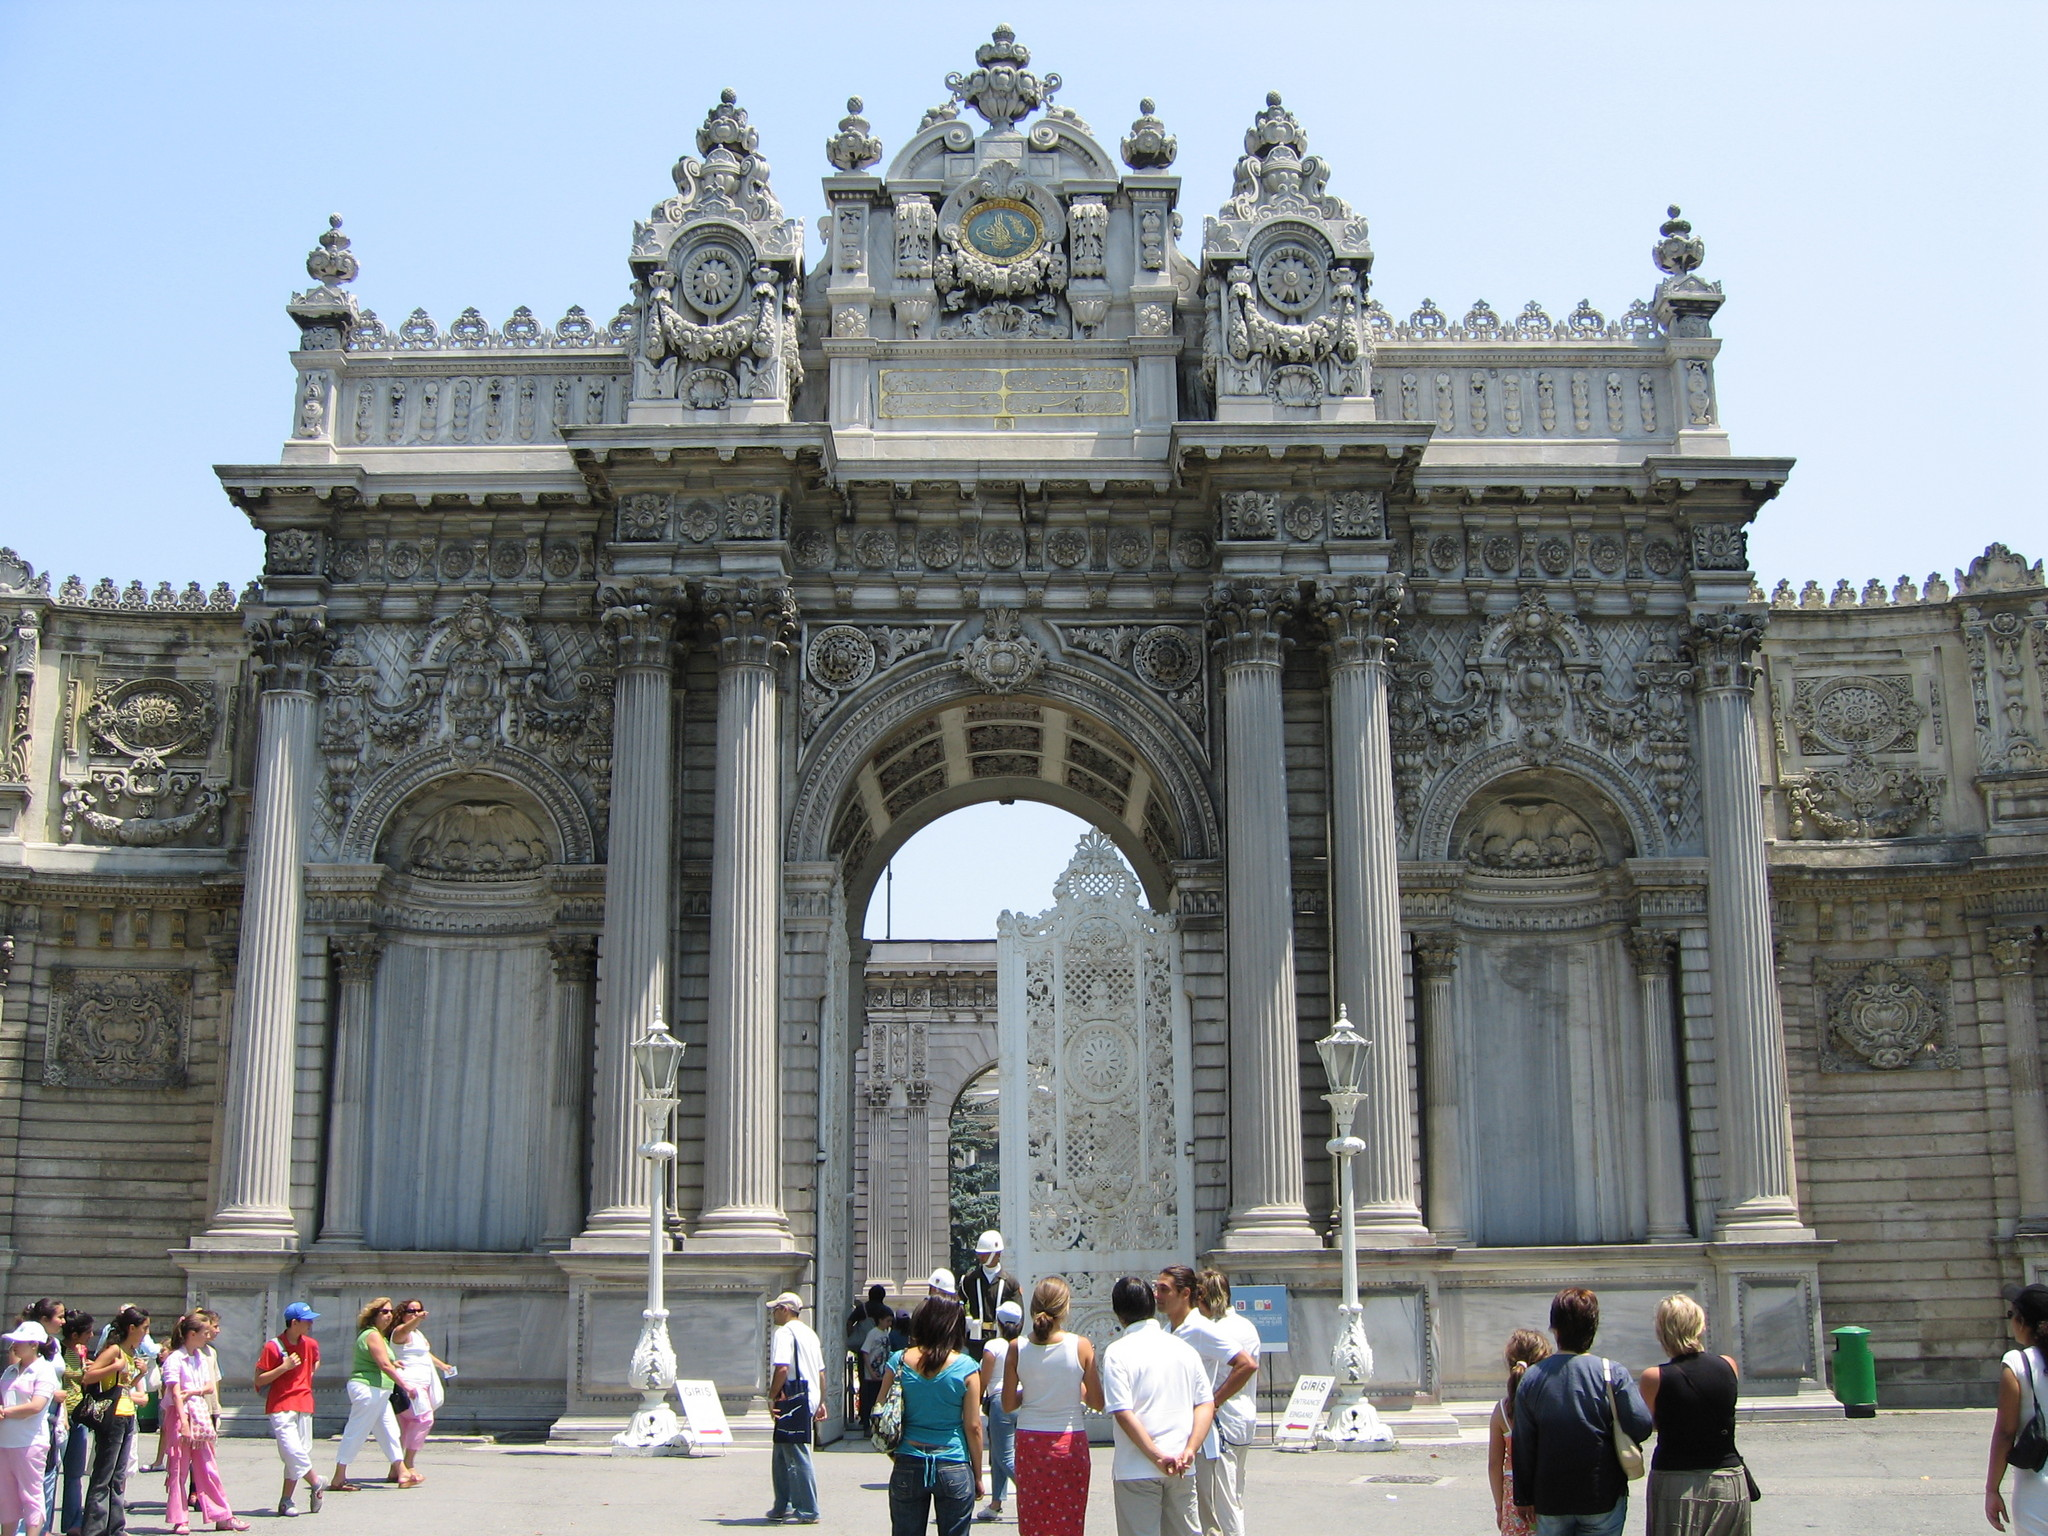 http://pages.pomona.edu/~sg064747/travel/images/Turkey/Dolmabahce/2048-DolmabahceMainGate.jpg